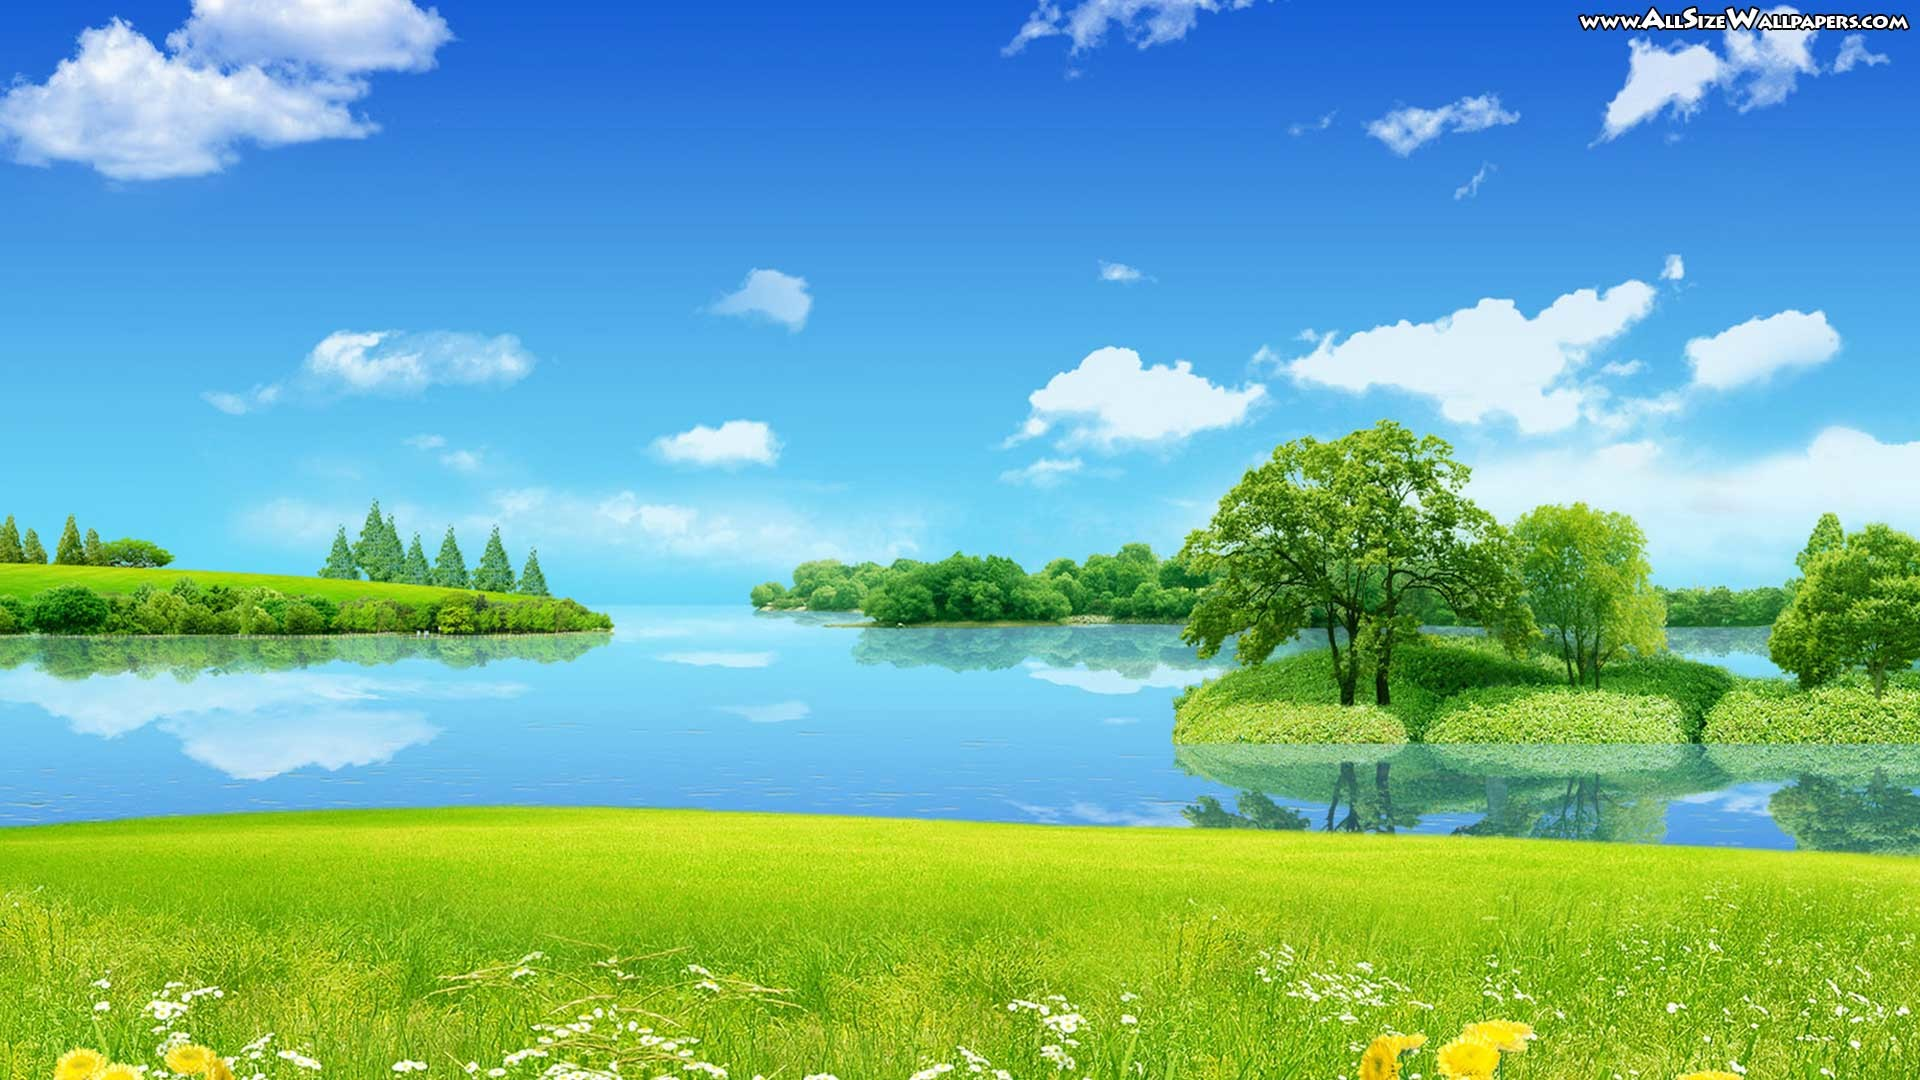 1920x1080 backgrounds clipart jpg royalty free library Background Images Nature (71+ images) jpg royalty free library